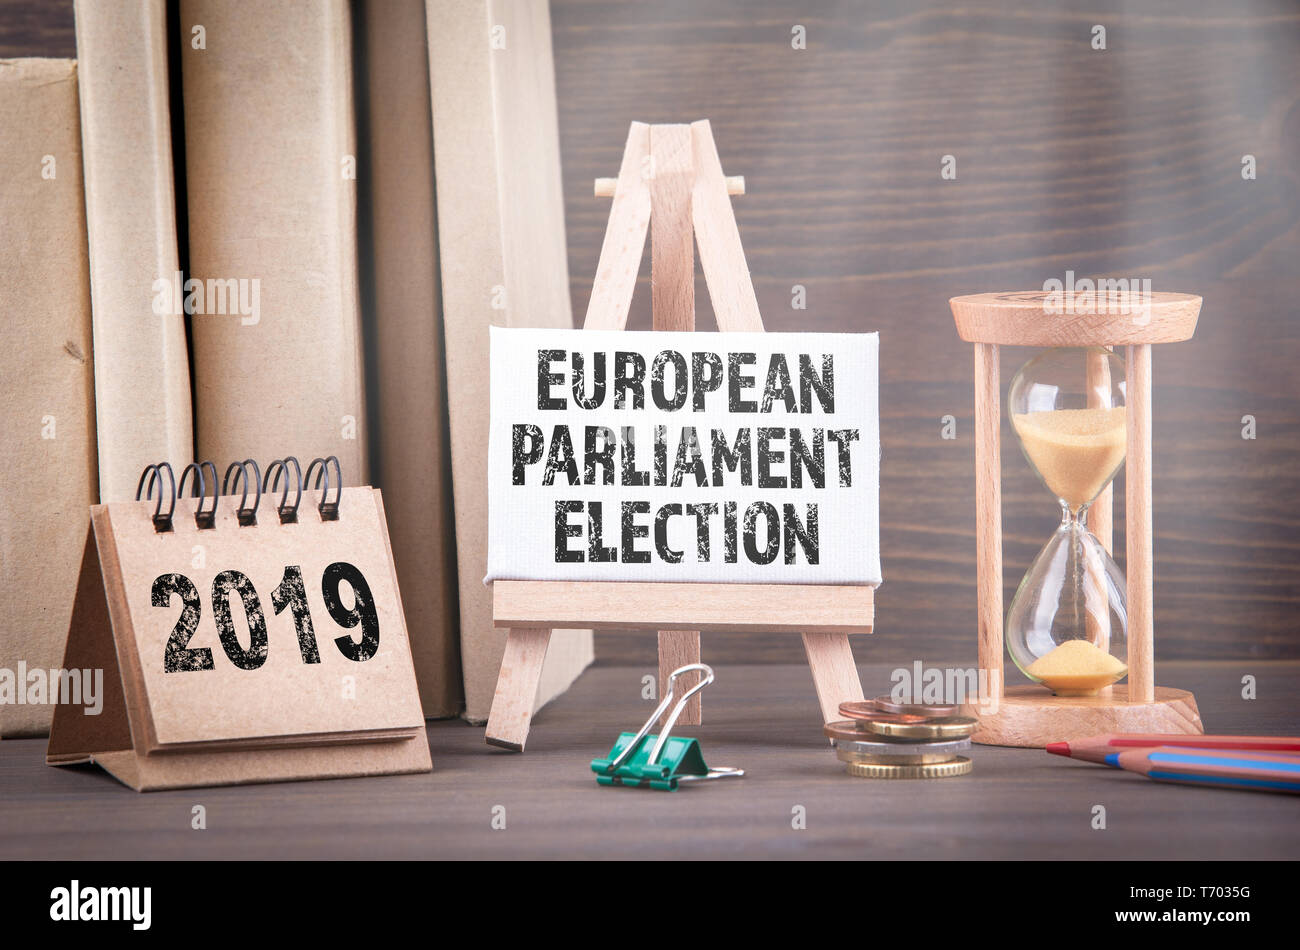 2019 European Parliament Election. Sandglass, hourglass or egg timer - Stock Image